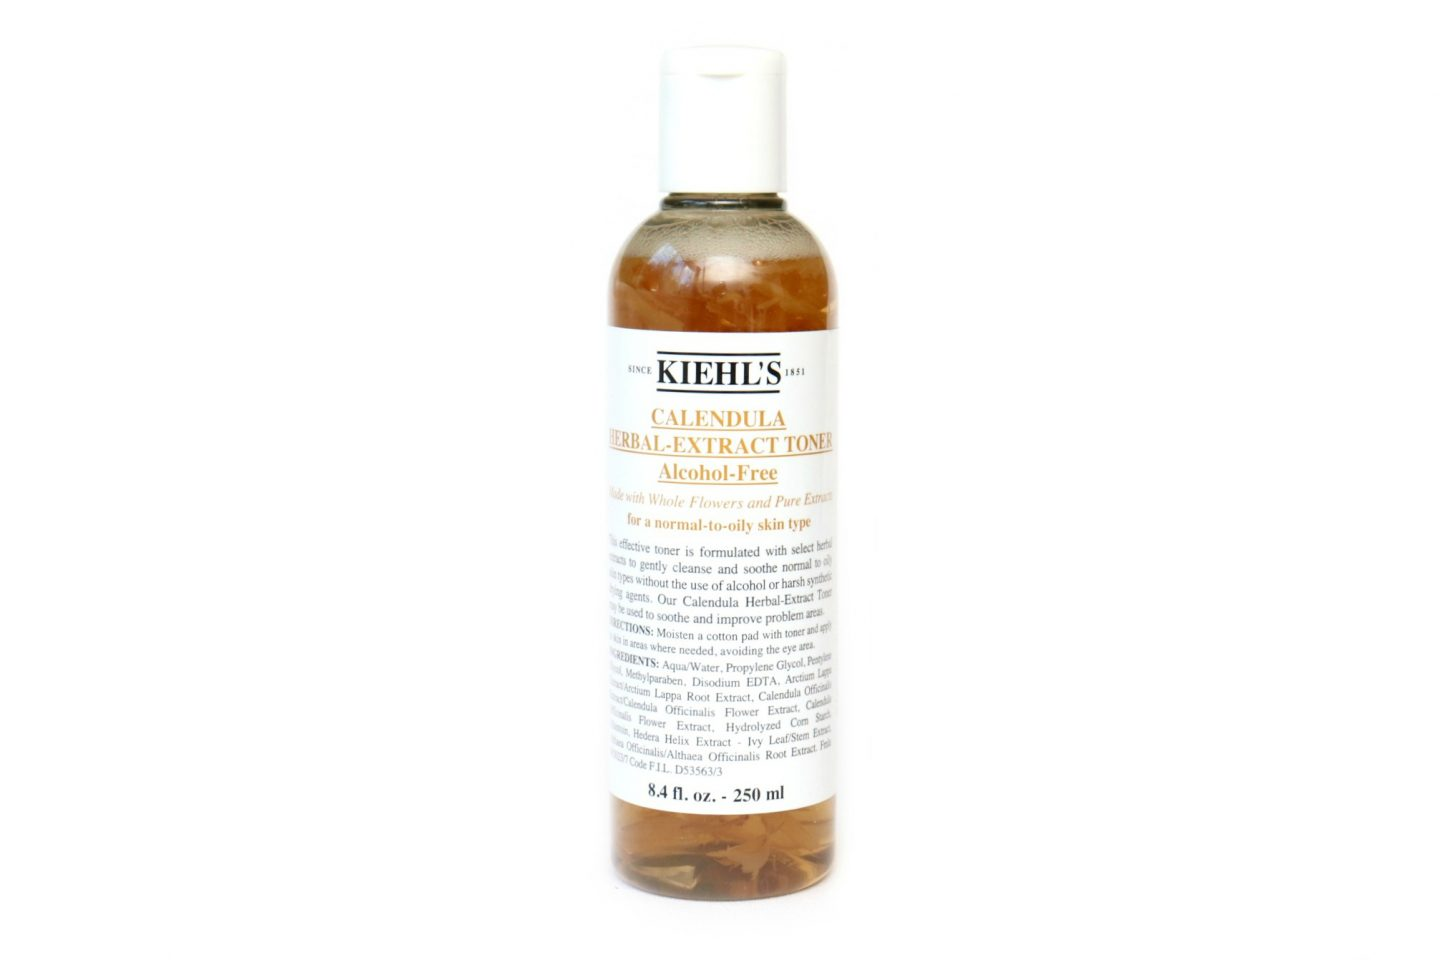 Kiehl's Calendula Herbal-Extract Toner Review